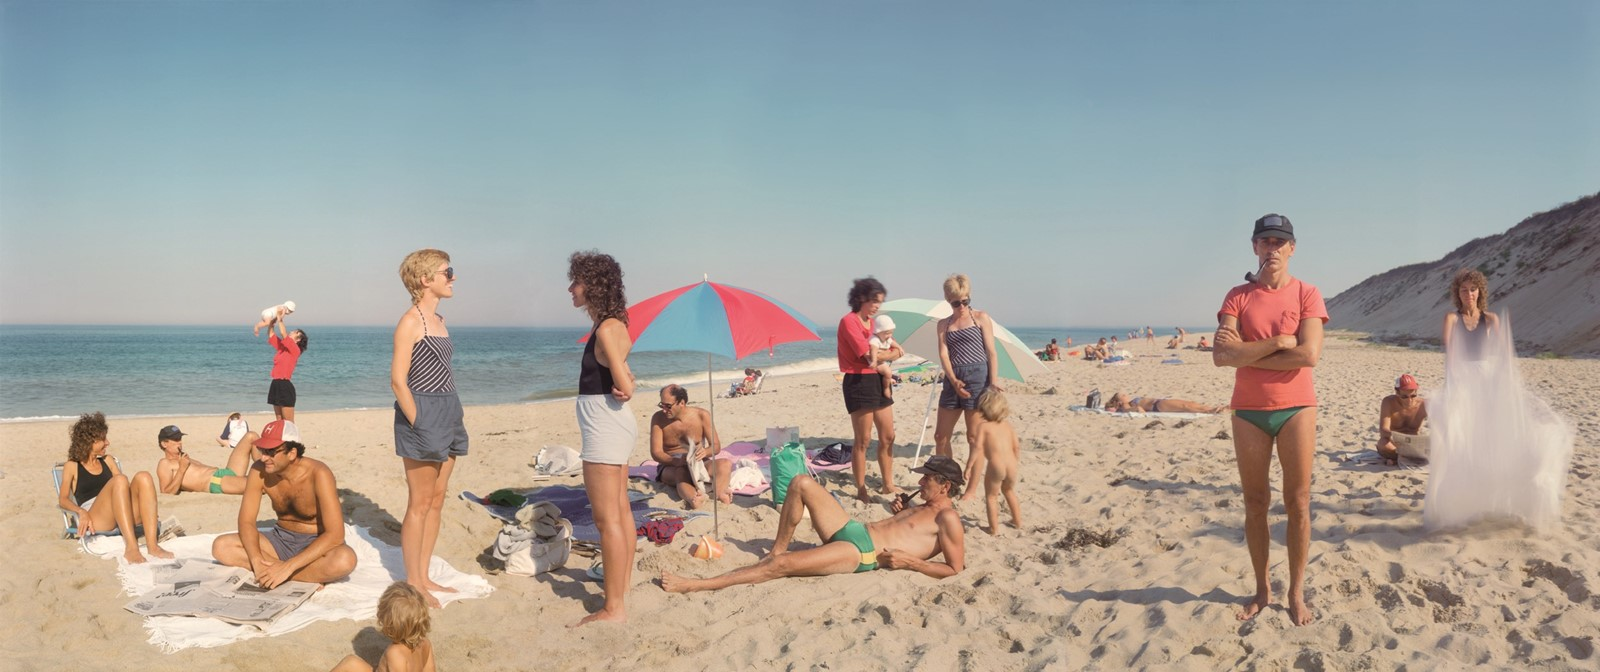 16_longnook_beach_truro_massachusetts_1983